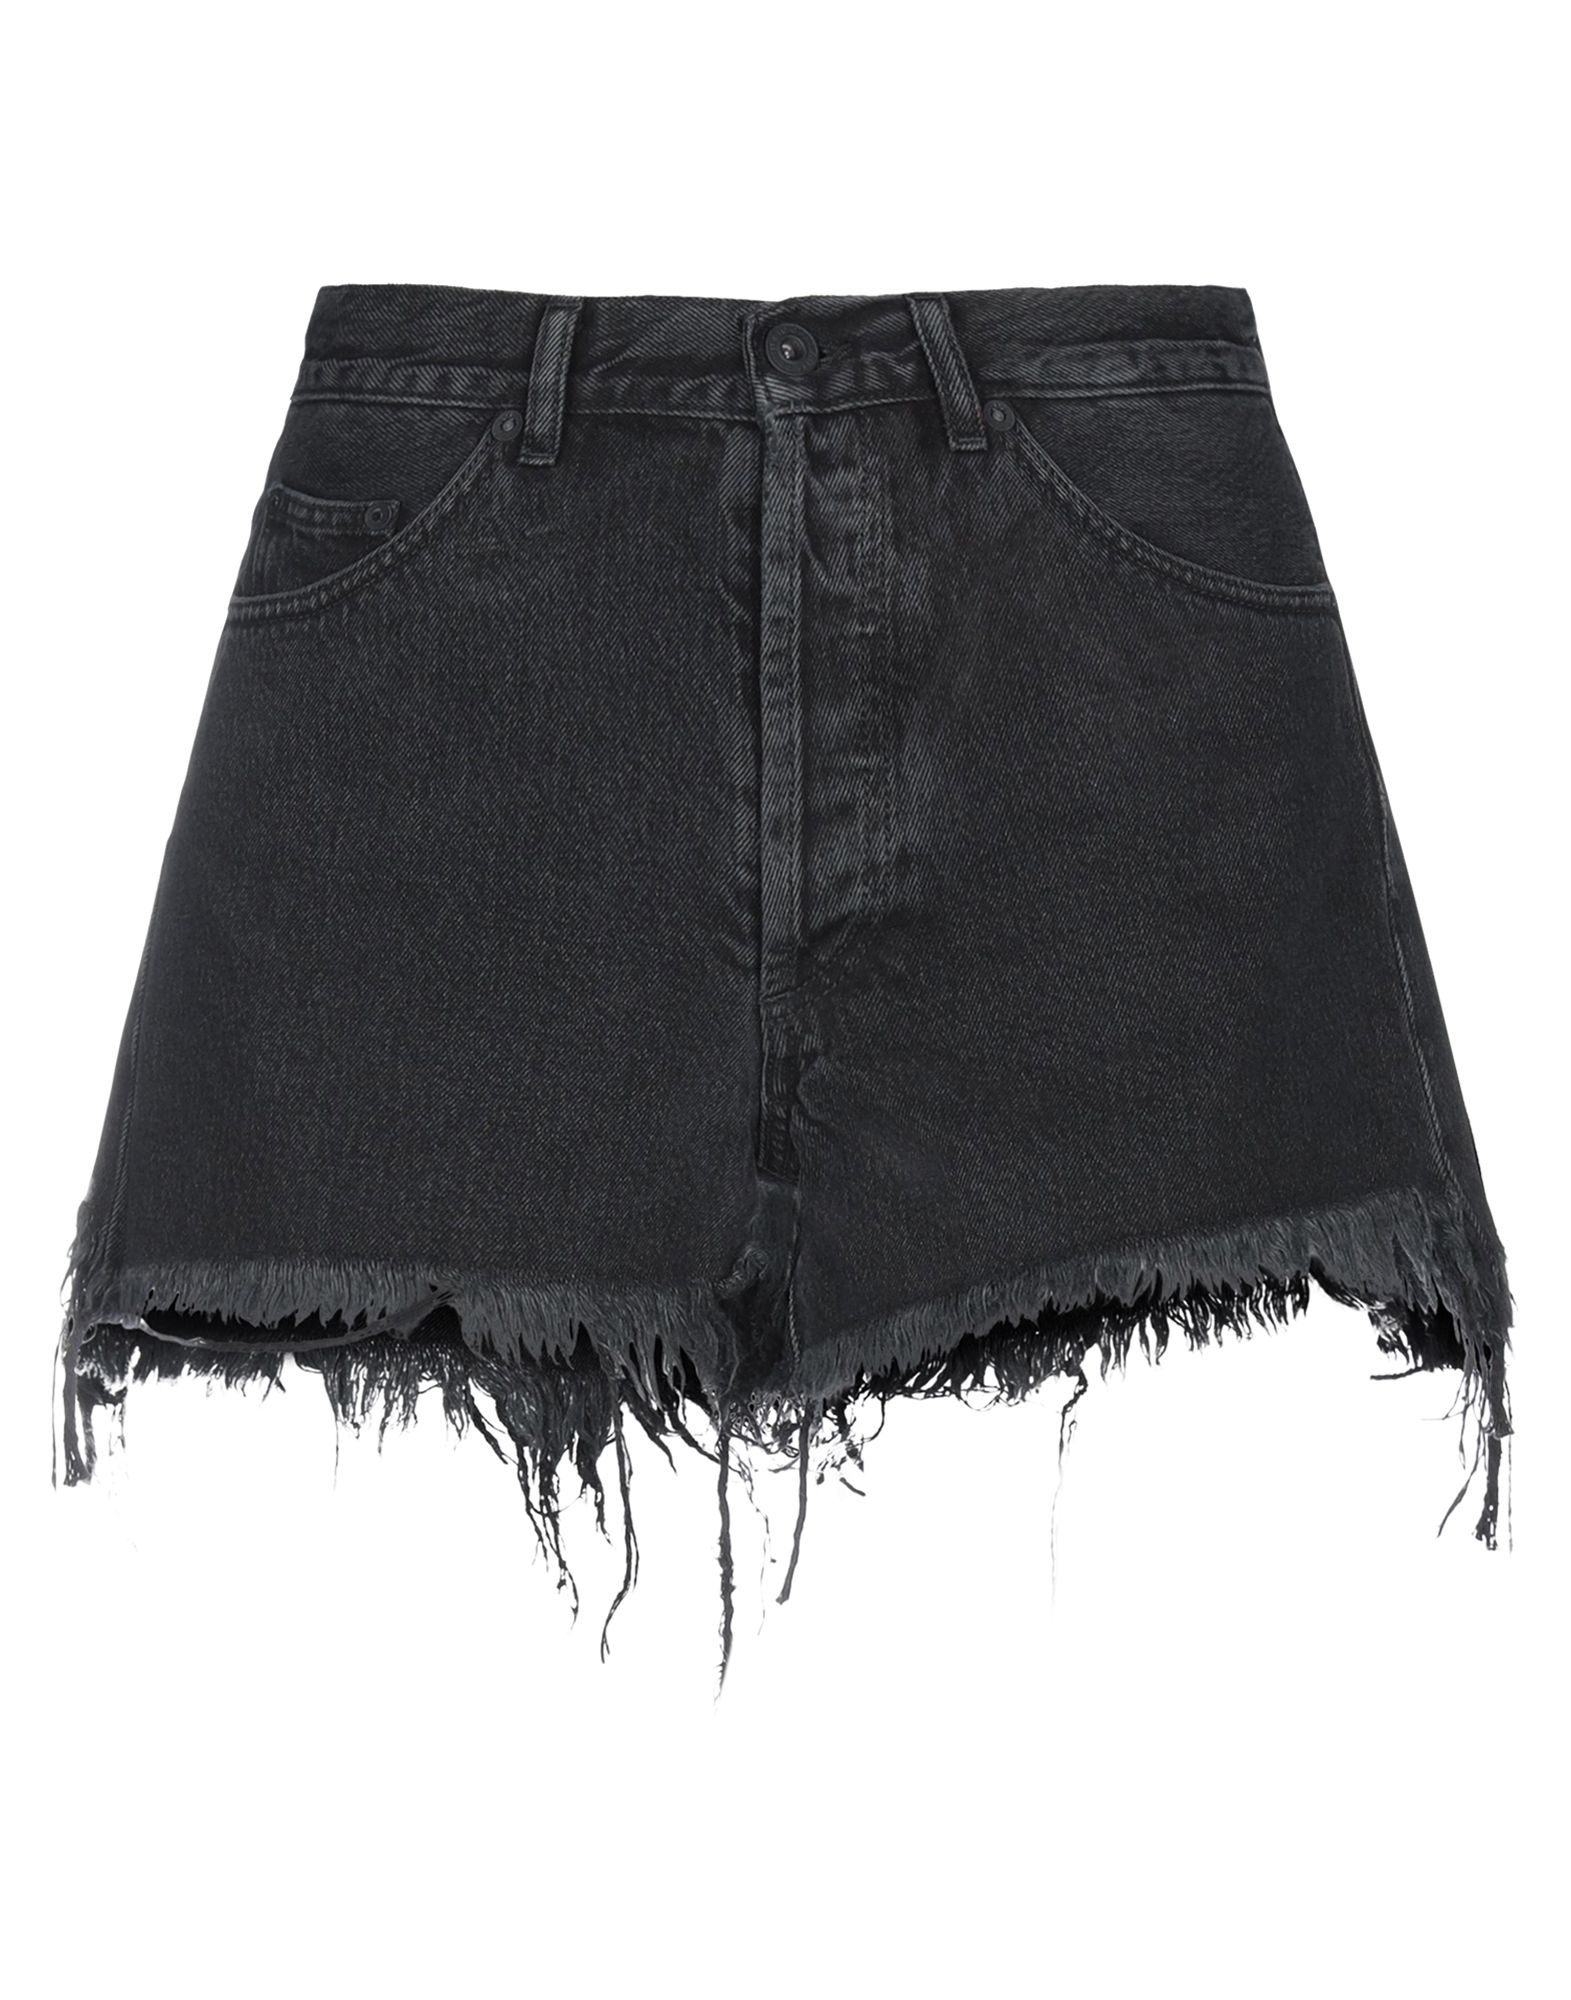 OFF-WHITE™ Denim shorts. denim, logo, solid color, colored wash, mid rise, front closure, button closing, multipockets, raw-cut hem. 100% Cotton